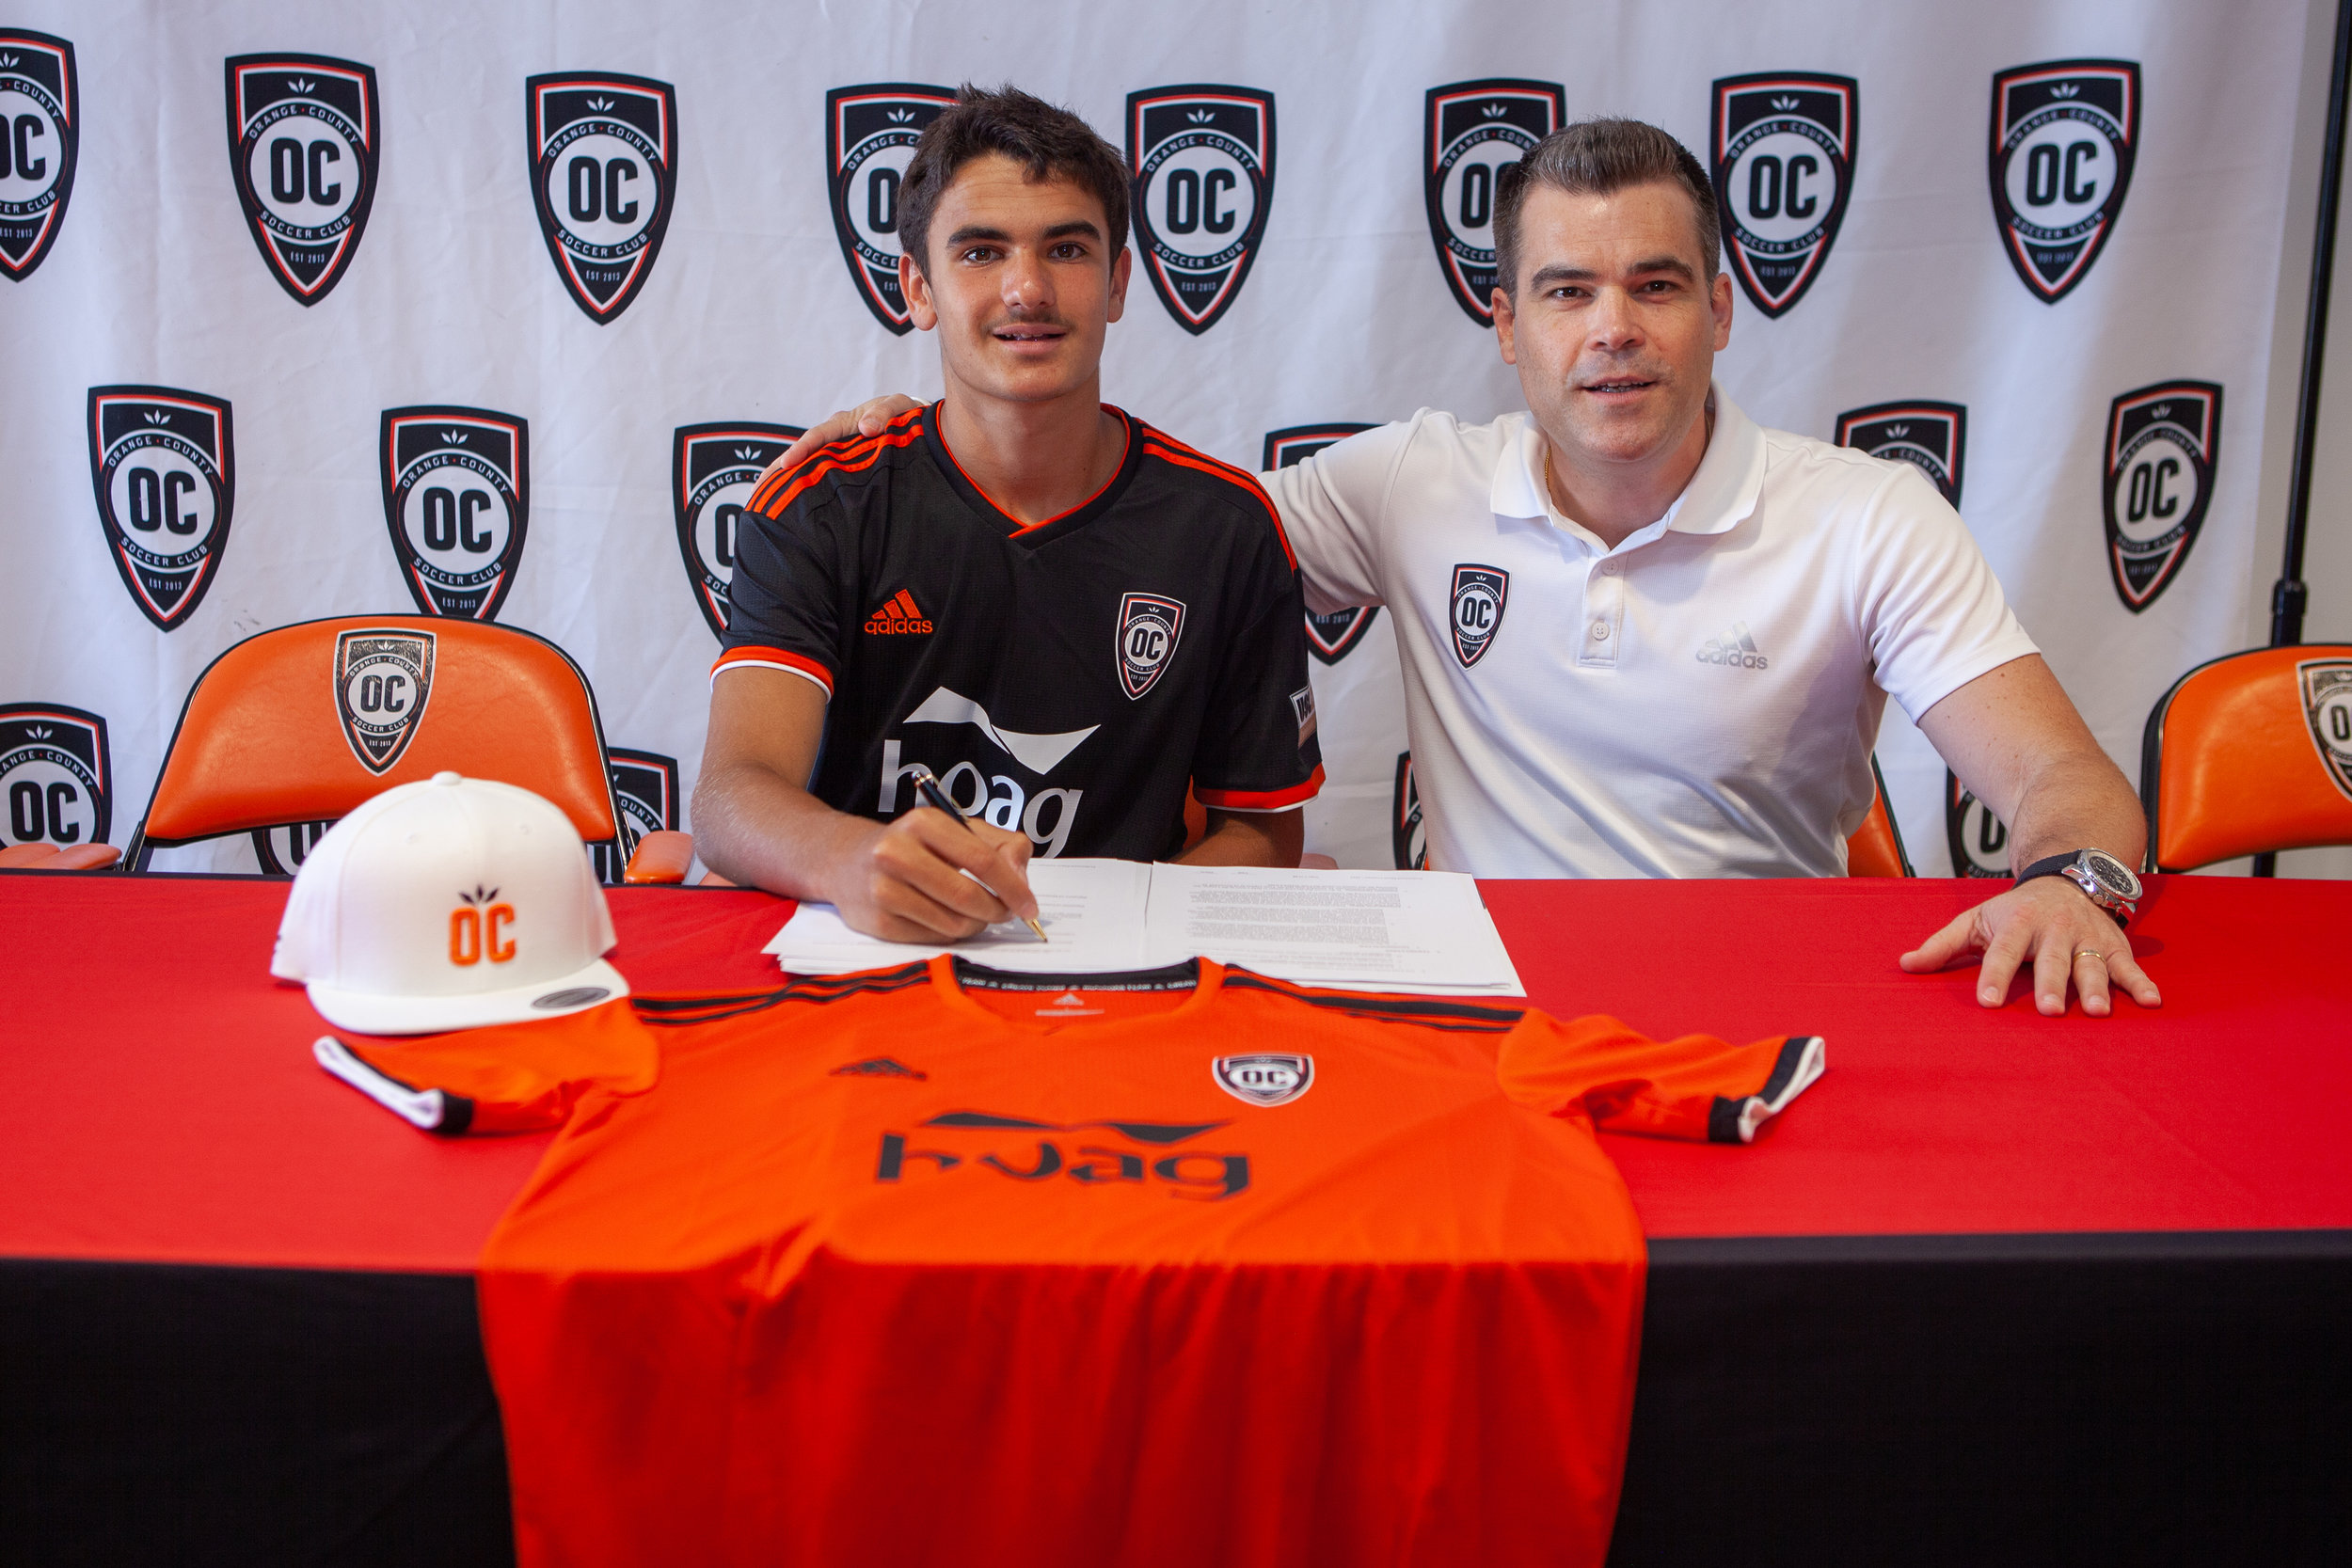 14-year-old Jacob Francis signs his contract with Orange County SC, making him the youngest ever American male to sign a professional contract.  |   Photo courtesy of Orange County SC/Liza Rosales